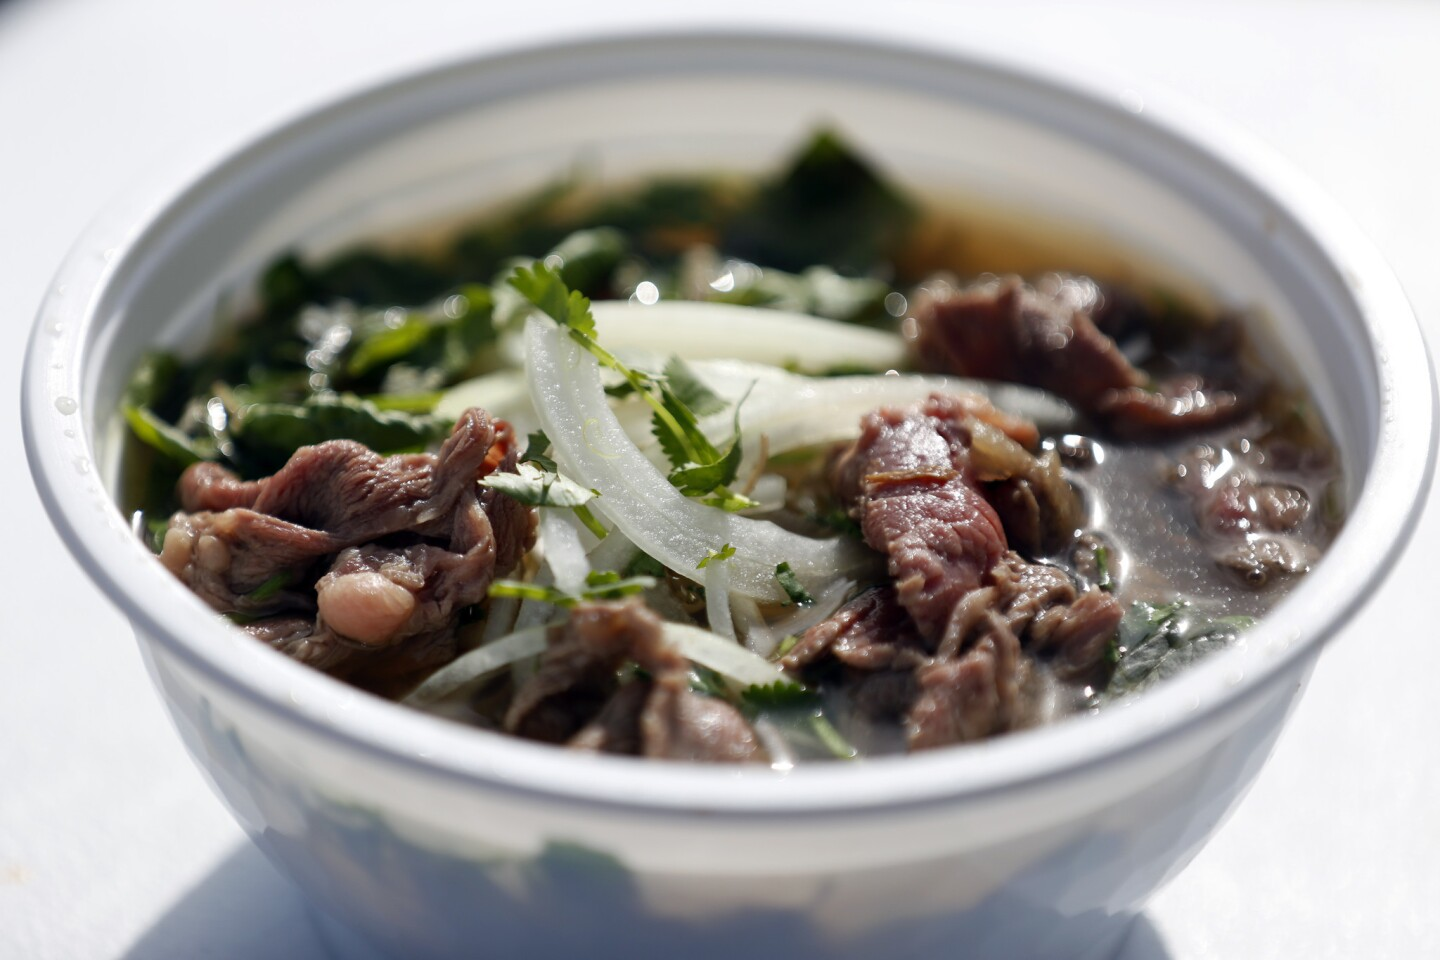 Pho, as you might expect, is the specialty of the Pho King Awesome food truck. This is a bowl of its Pho King Noodle.